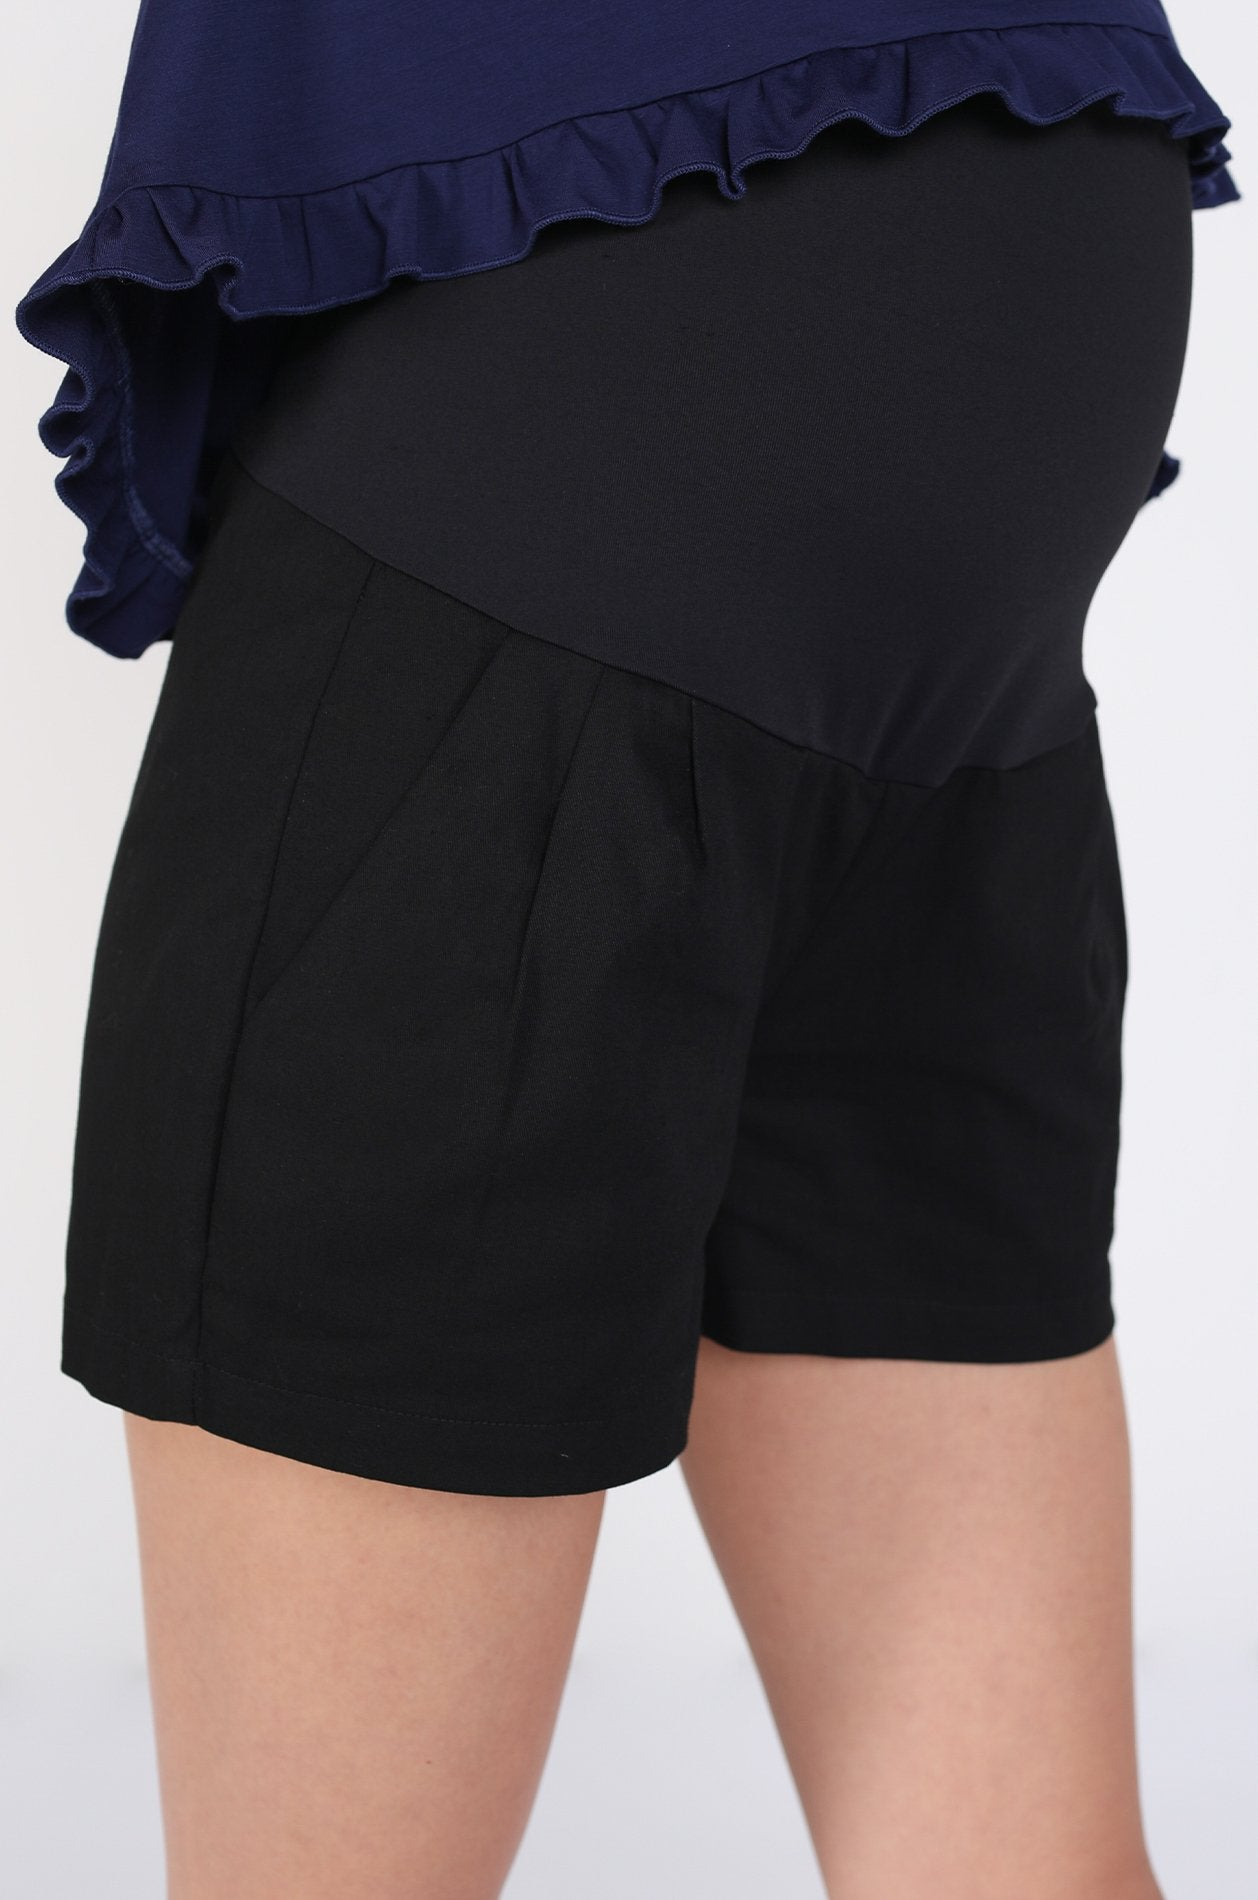 Allie Maternity Shorts In Black Nursing Wear Jump Eat Cry